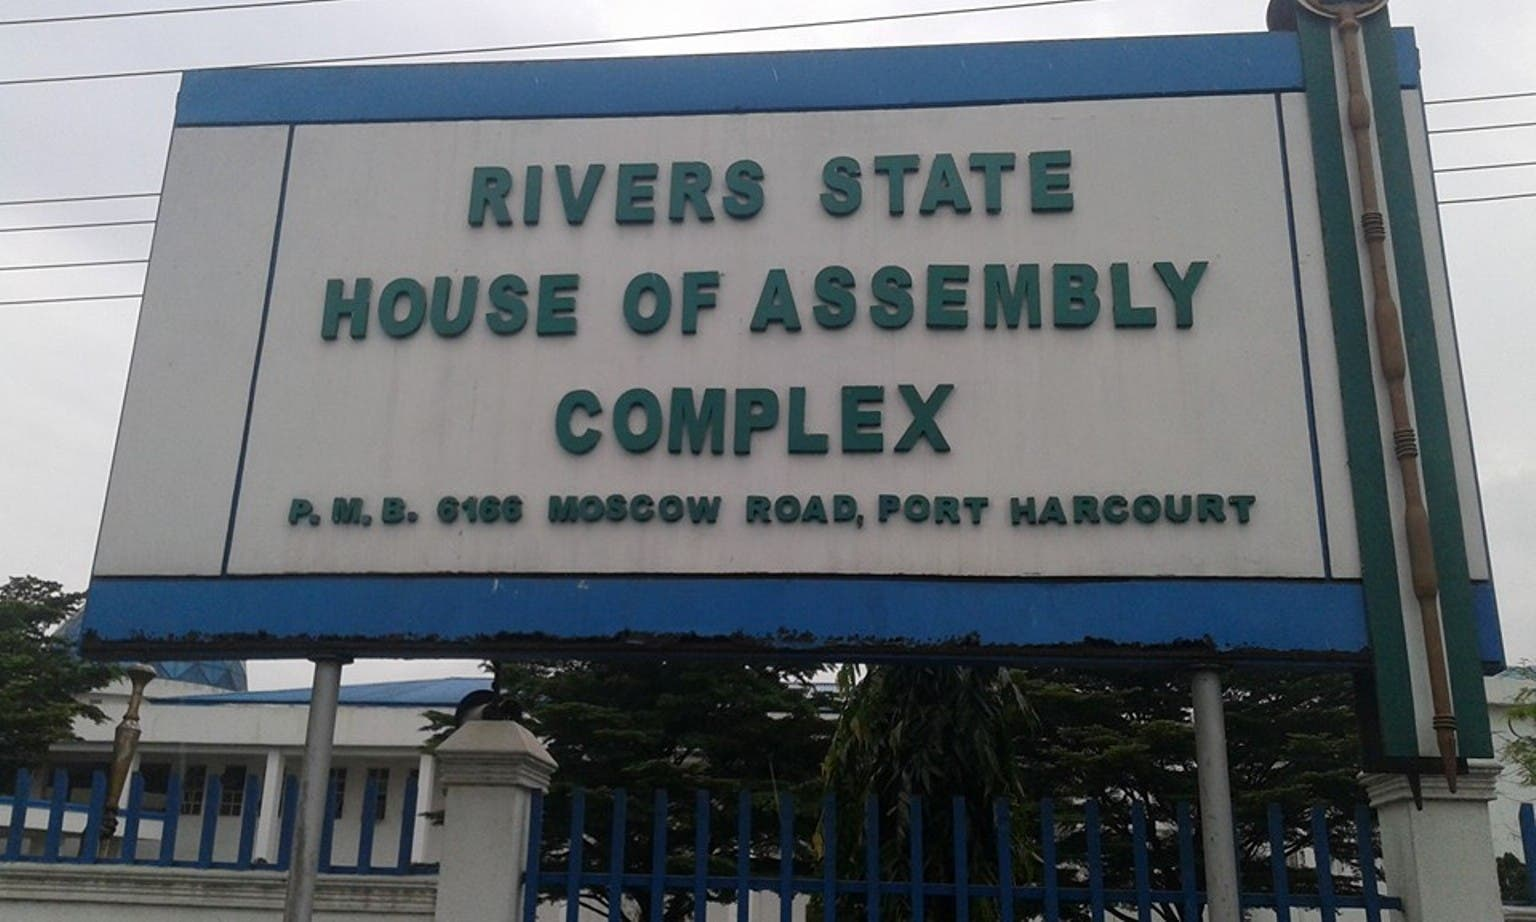 RIVERS-ASSEMBLY